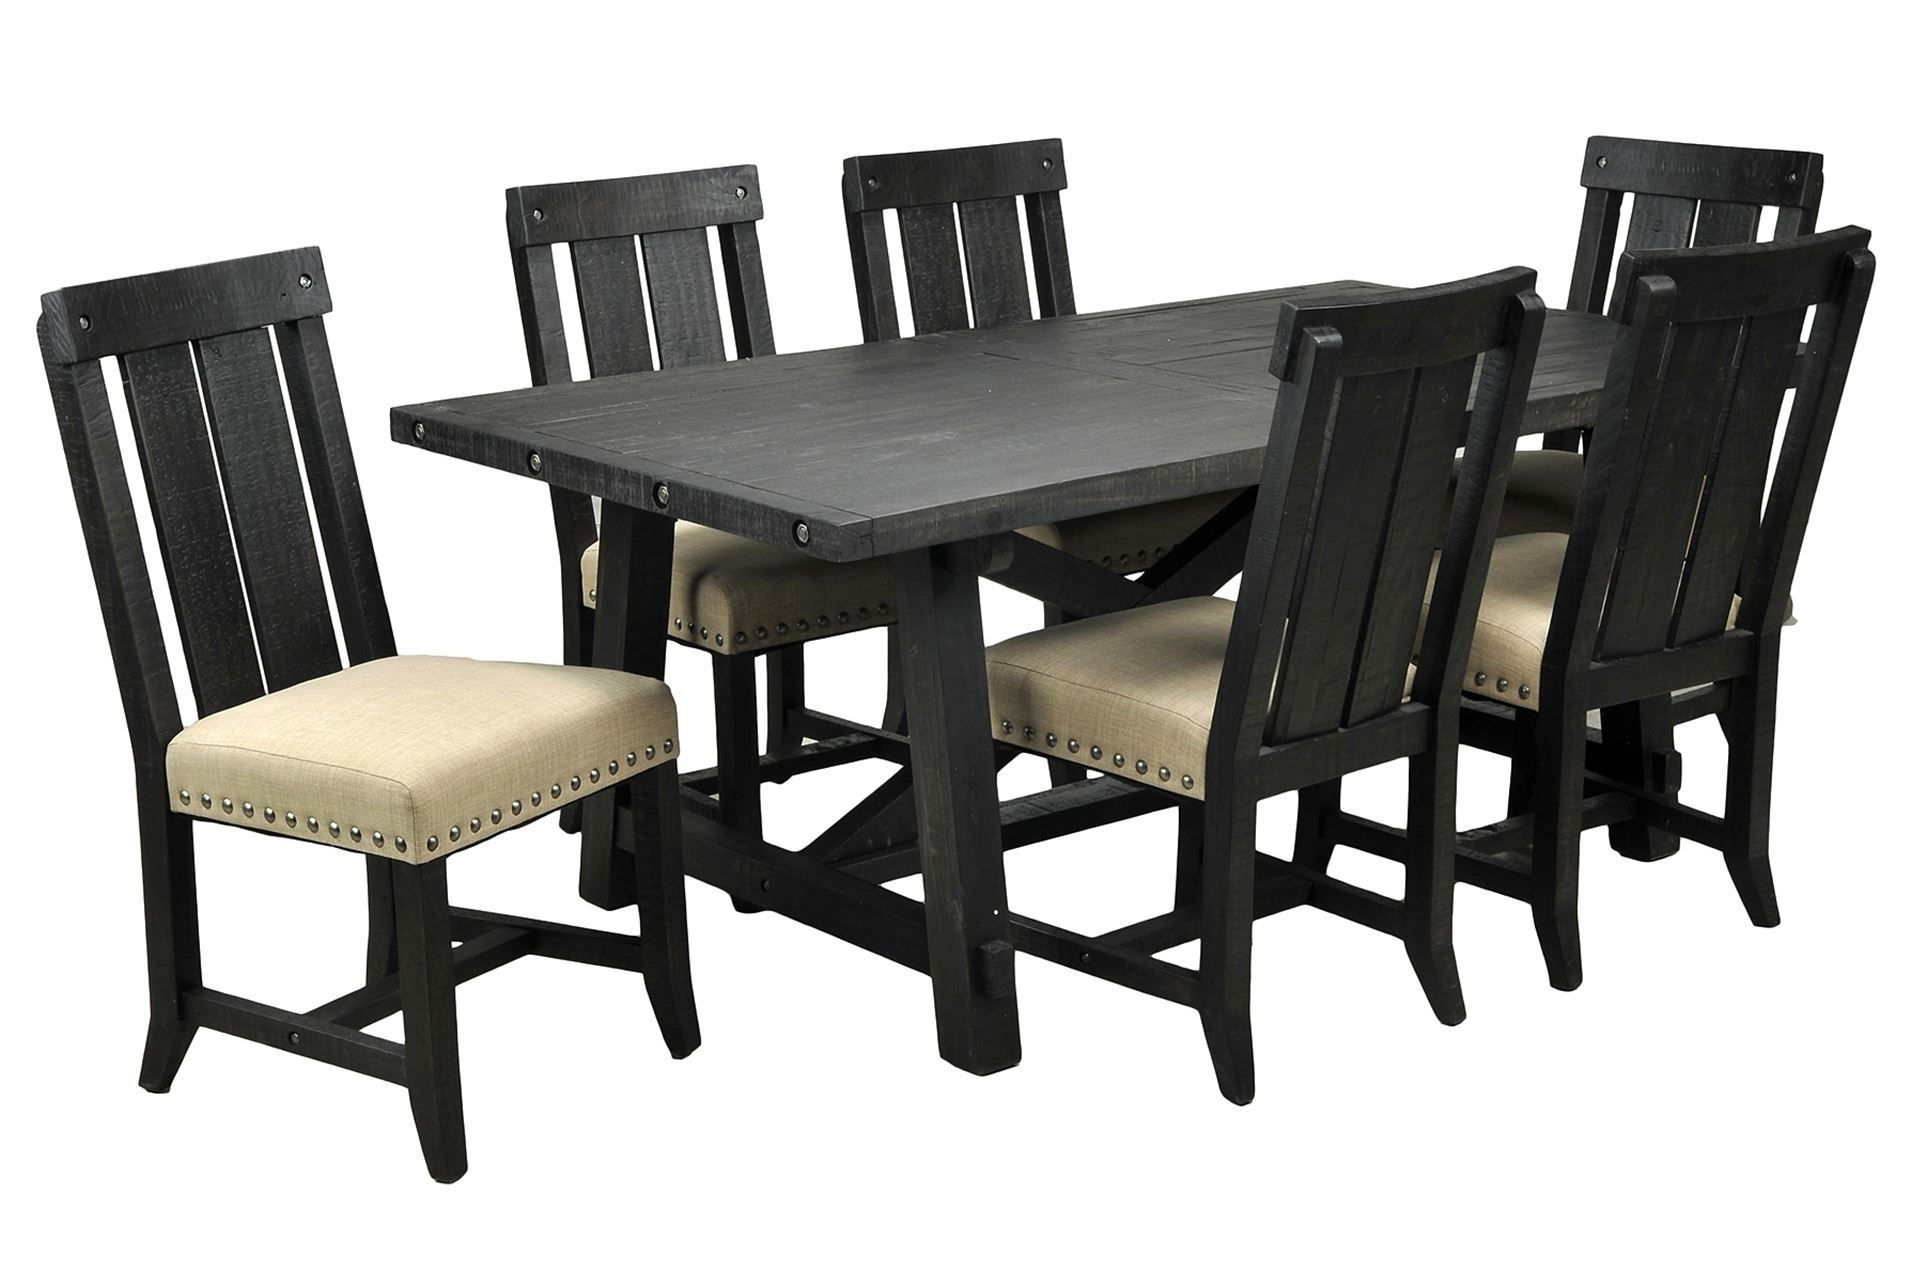 Jaxon 7 Piece Rectangle Dining Set W/wood Chairs | For The House I Inside Latest Jaxon Grey 7 Piece Rectangle Extension Dining Sets With Uph Chairs (View 6 of 20)